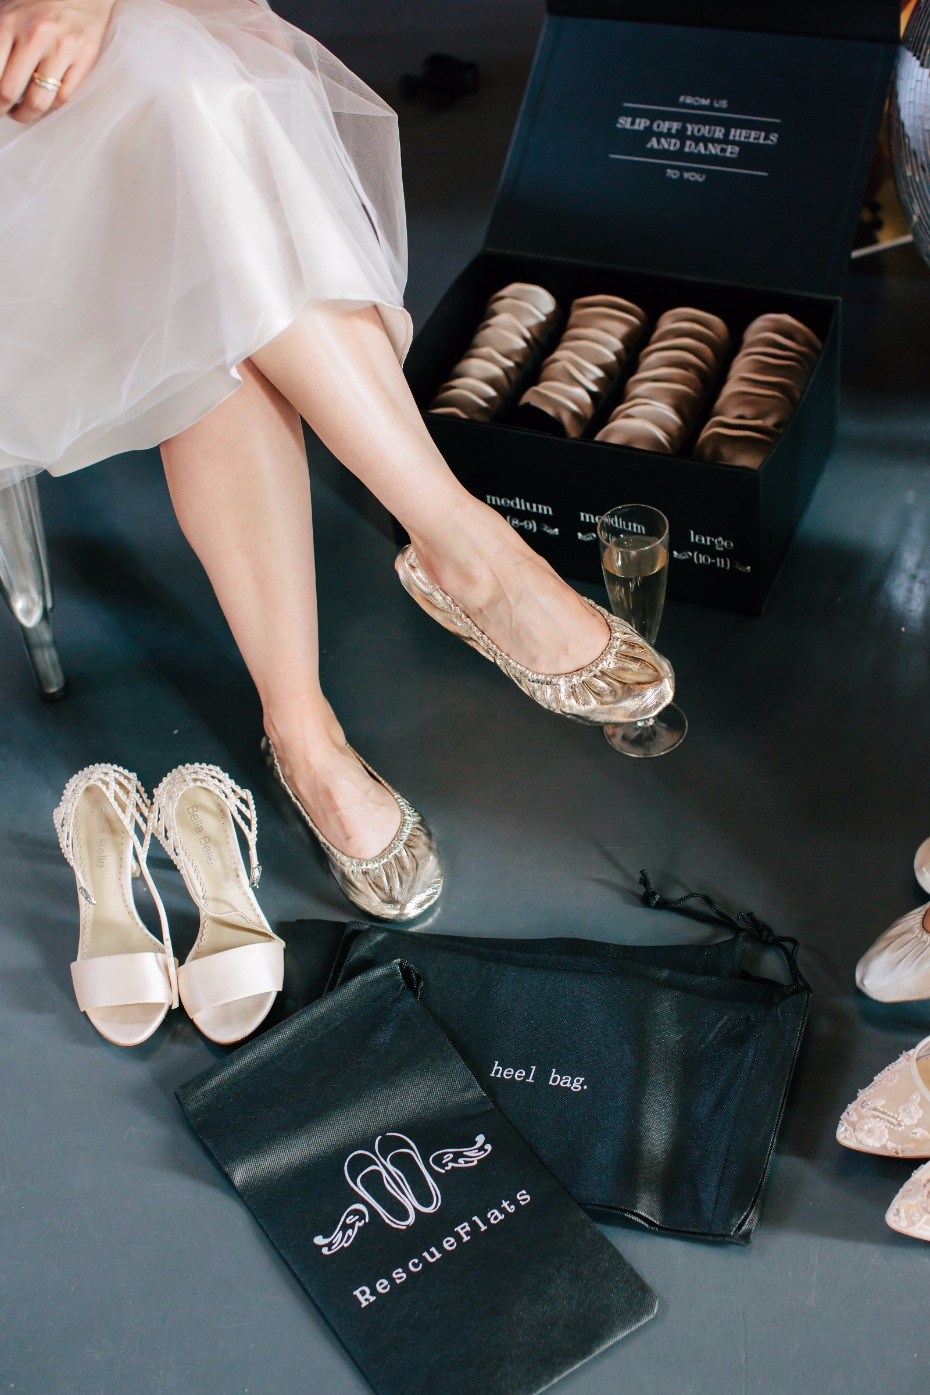 Rescue Flats will rescue your wedding guests feet and save the party